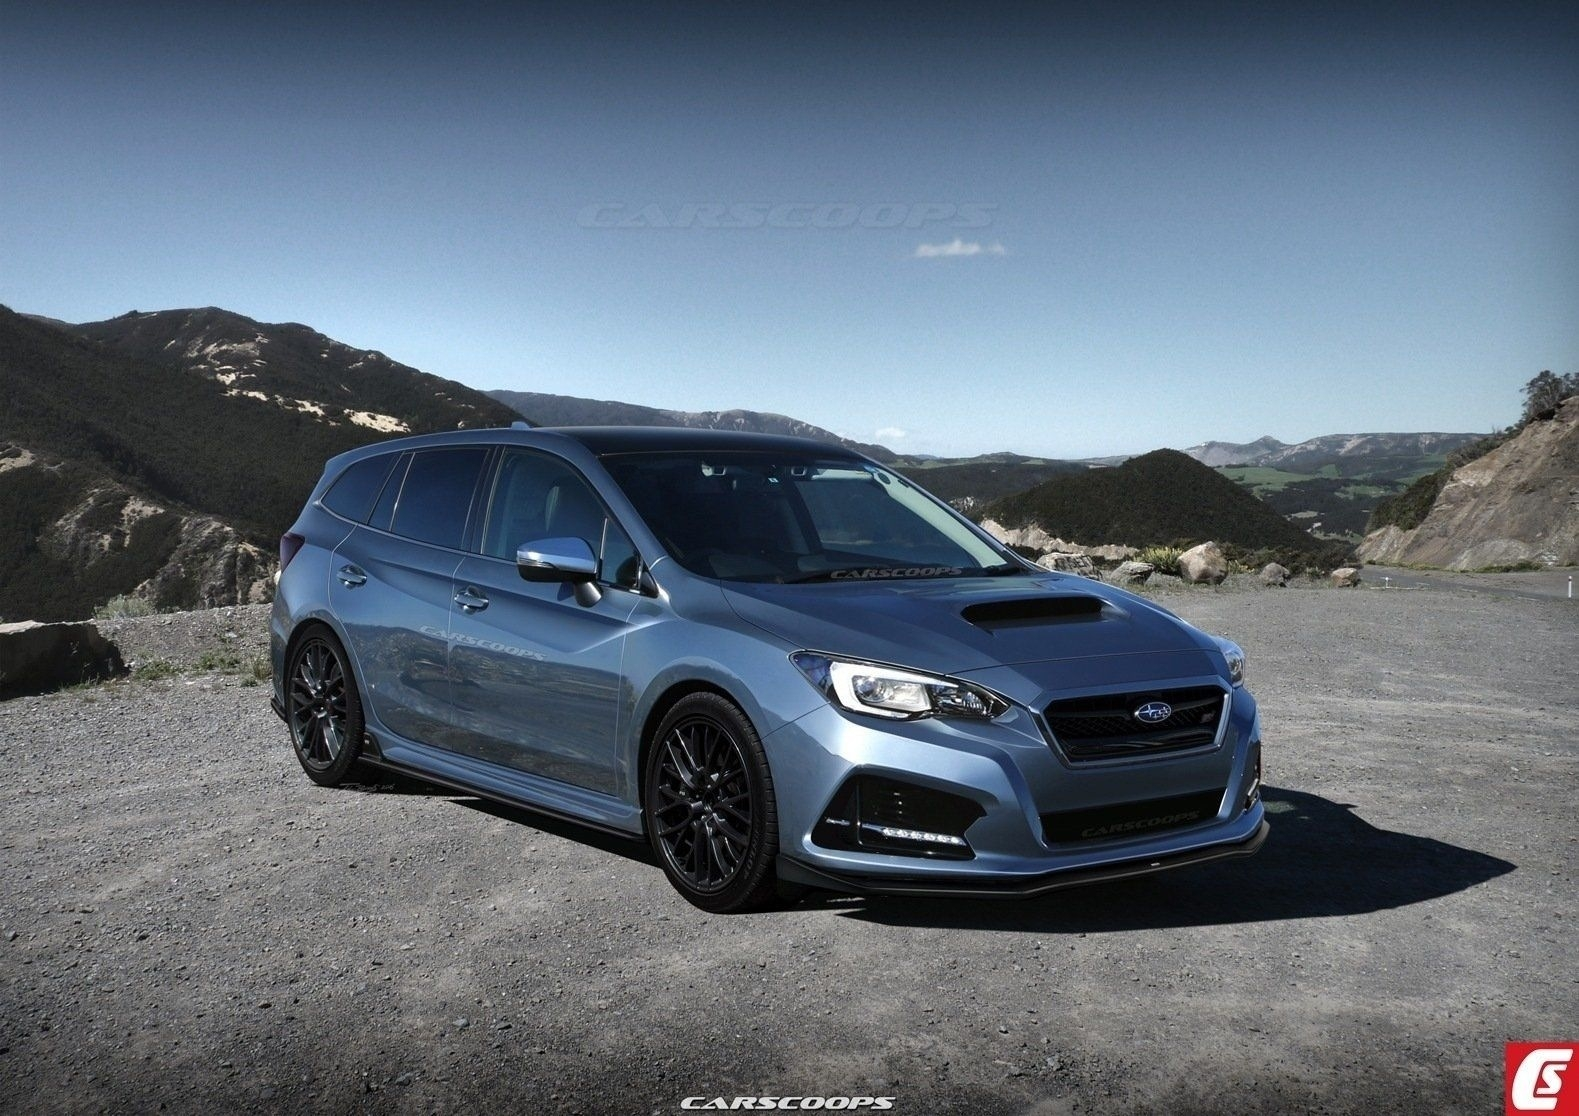 44 All New 2019 Subaru Legacy Turbo Gt Engine